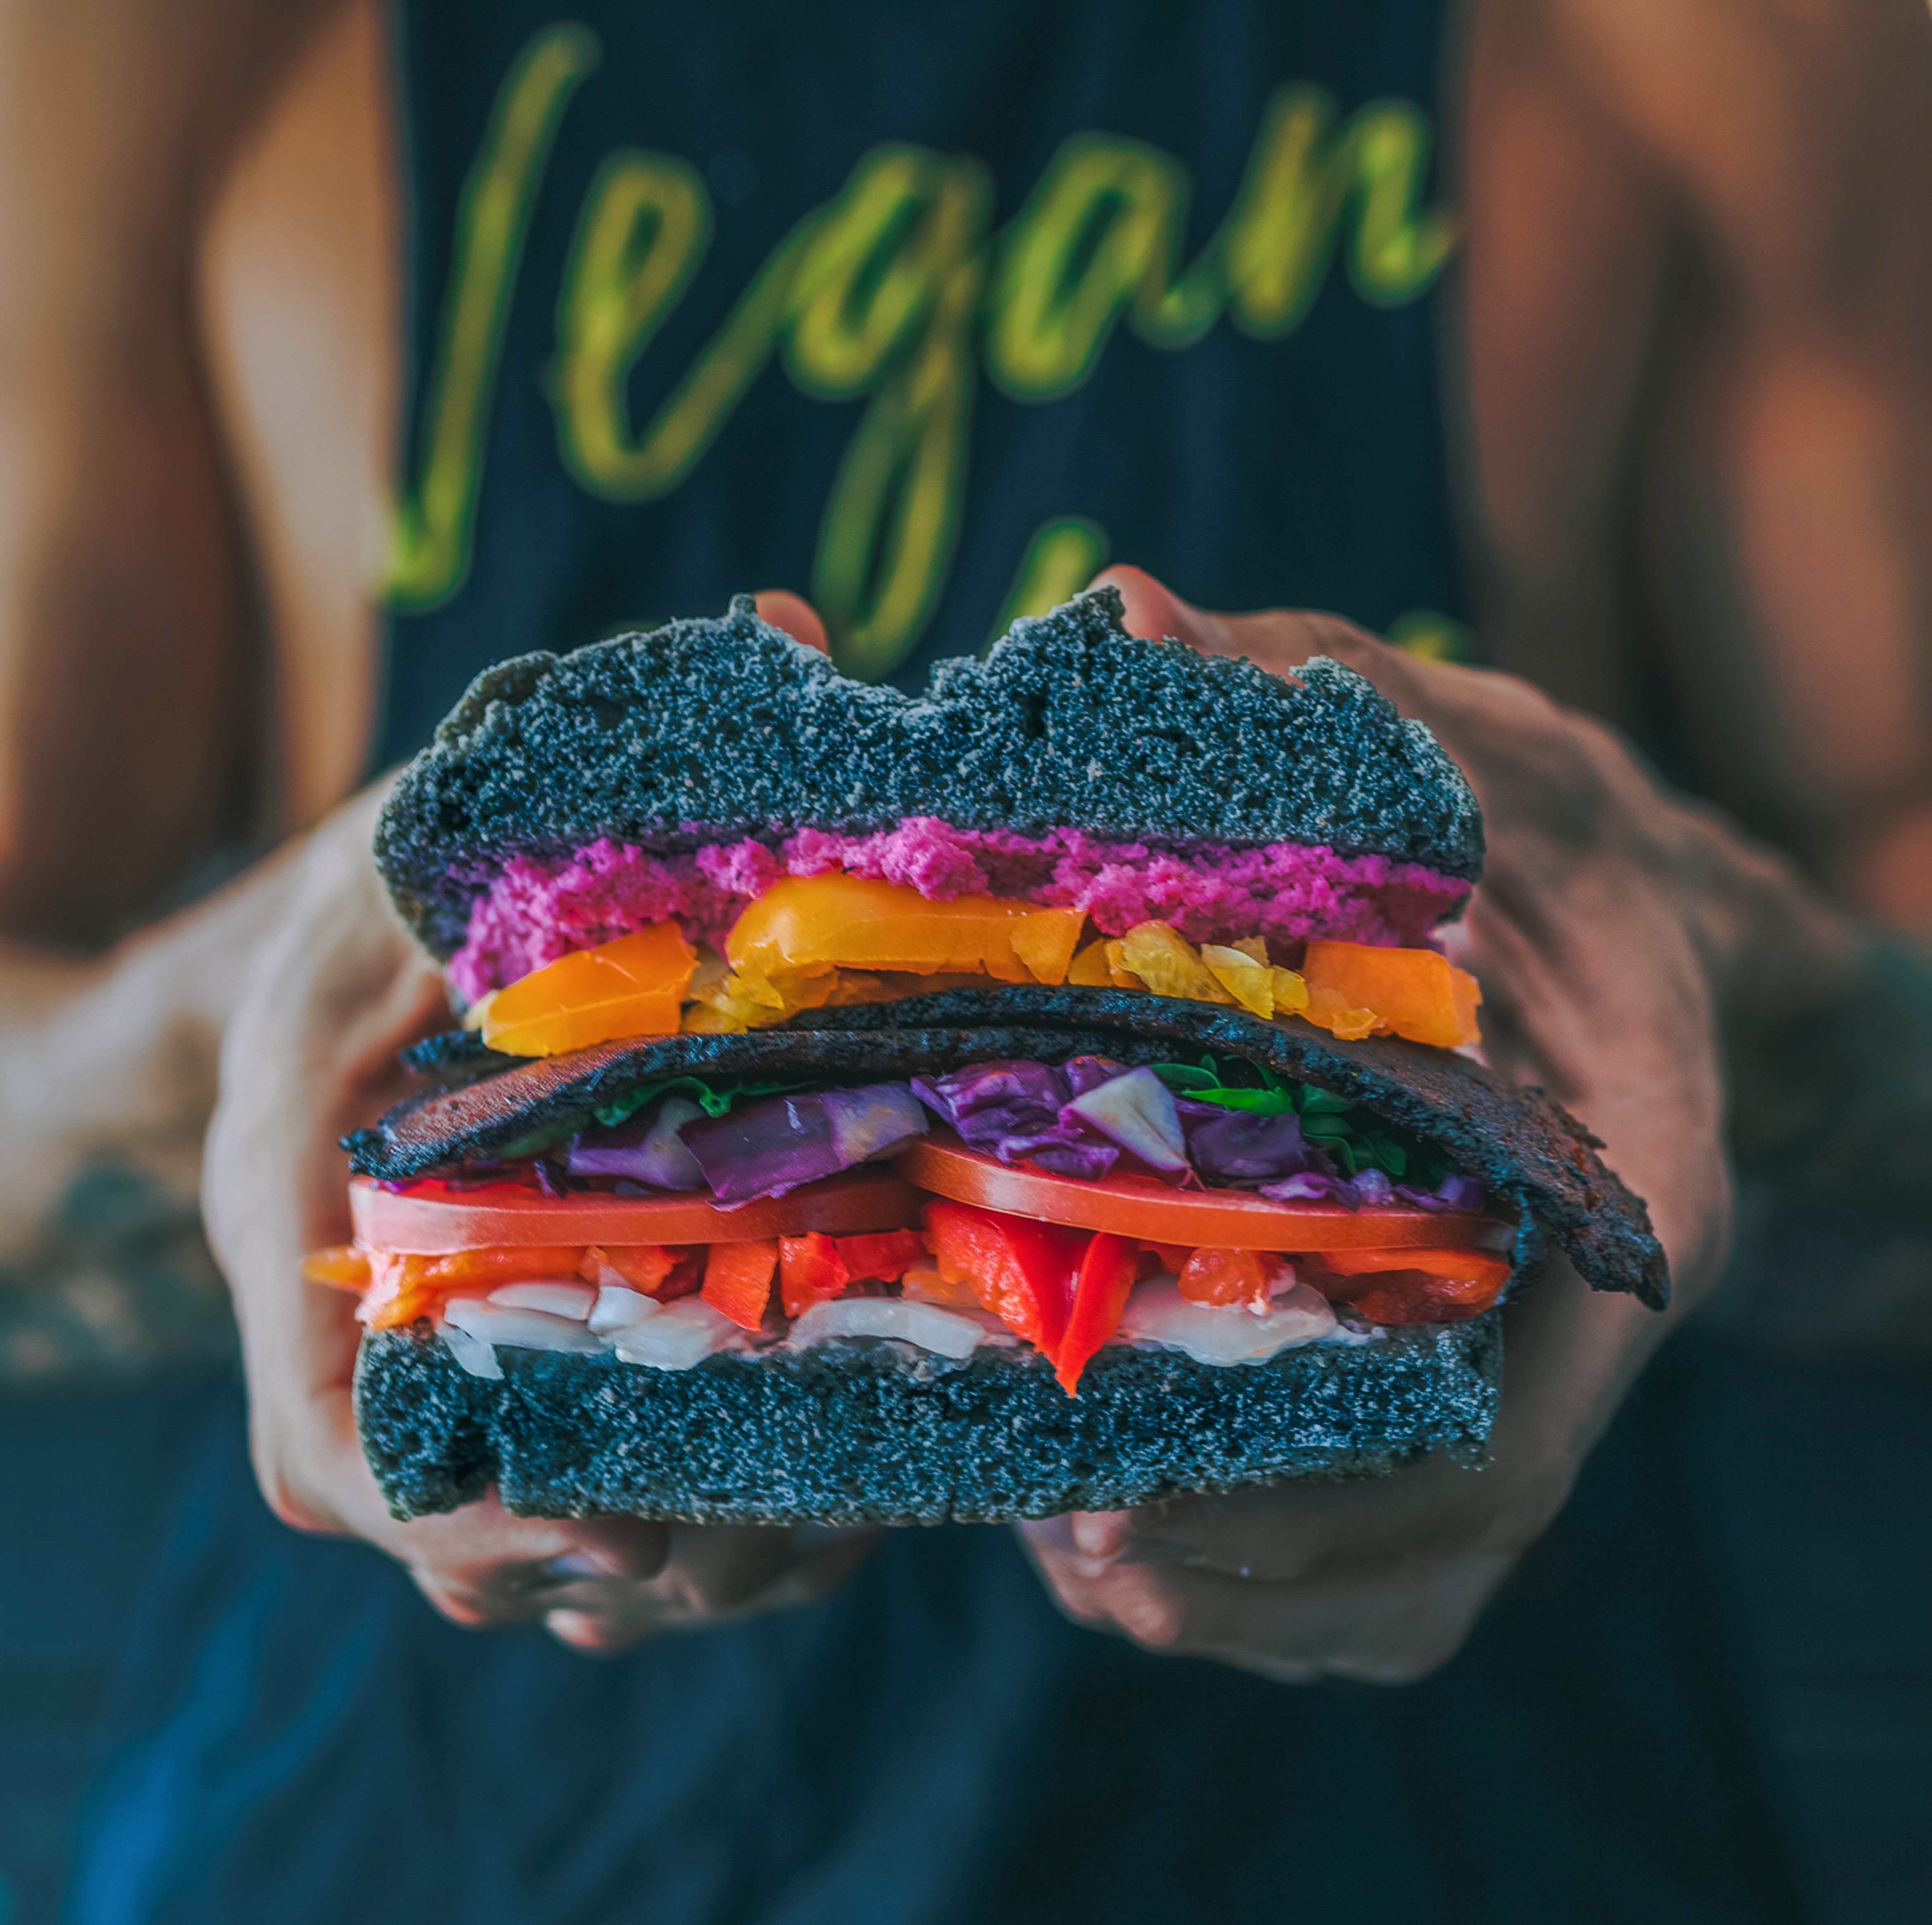 a person holding a vegan burger